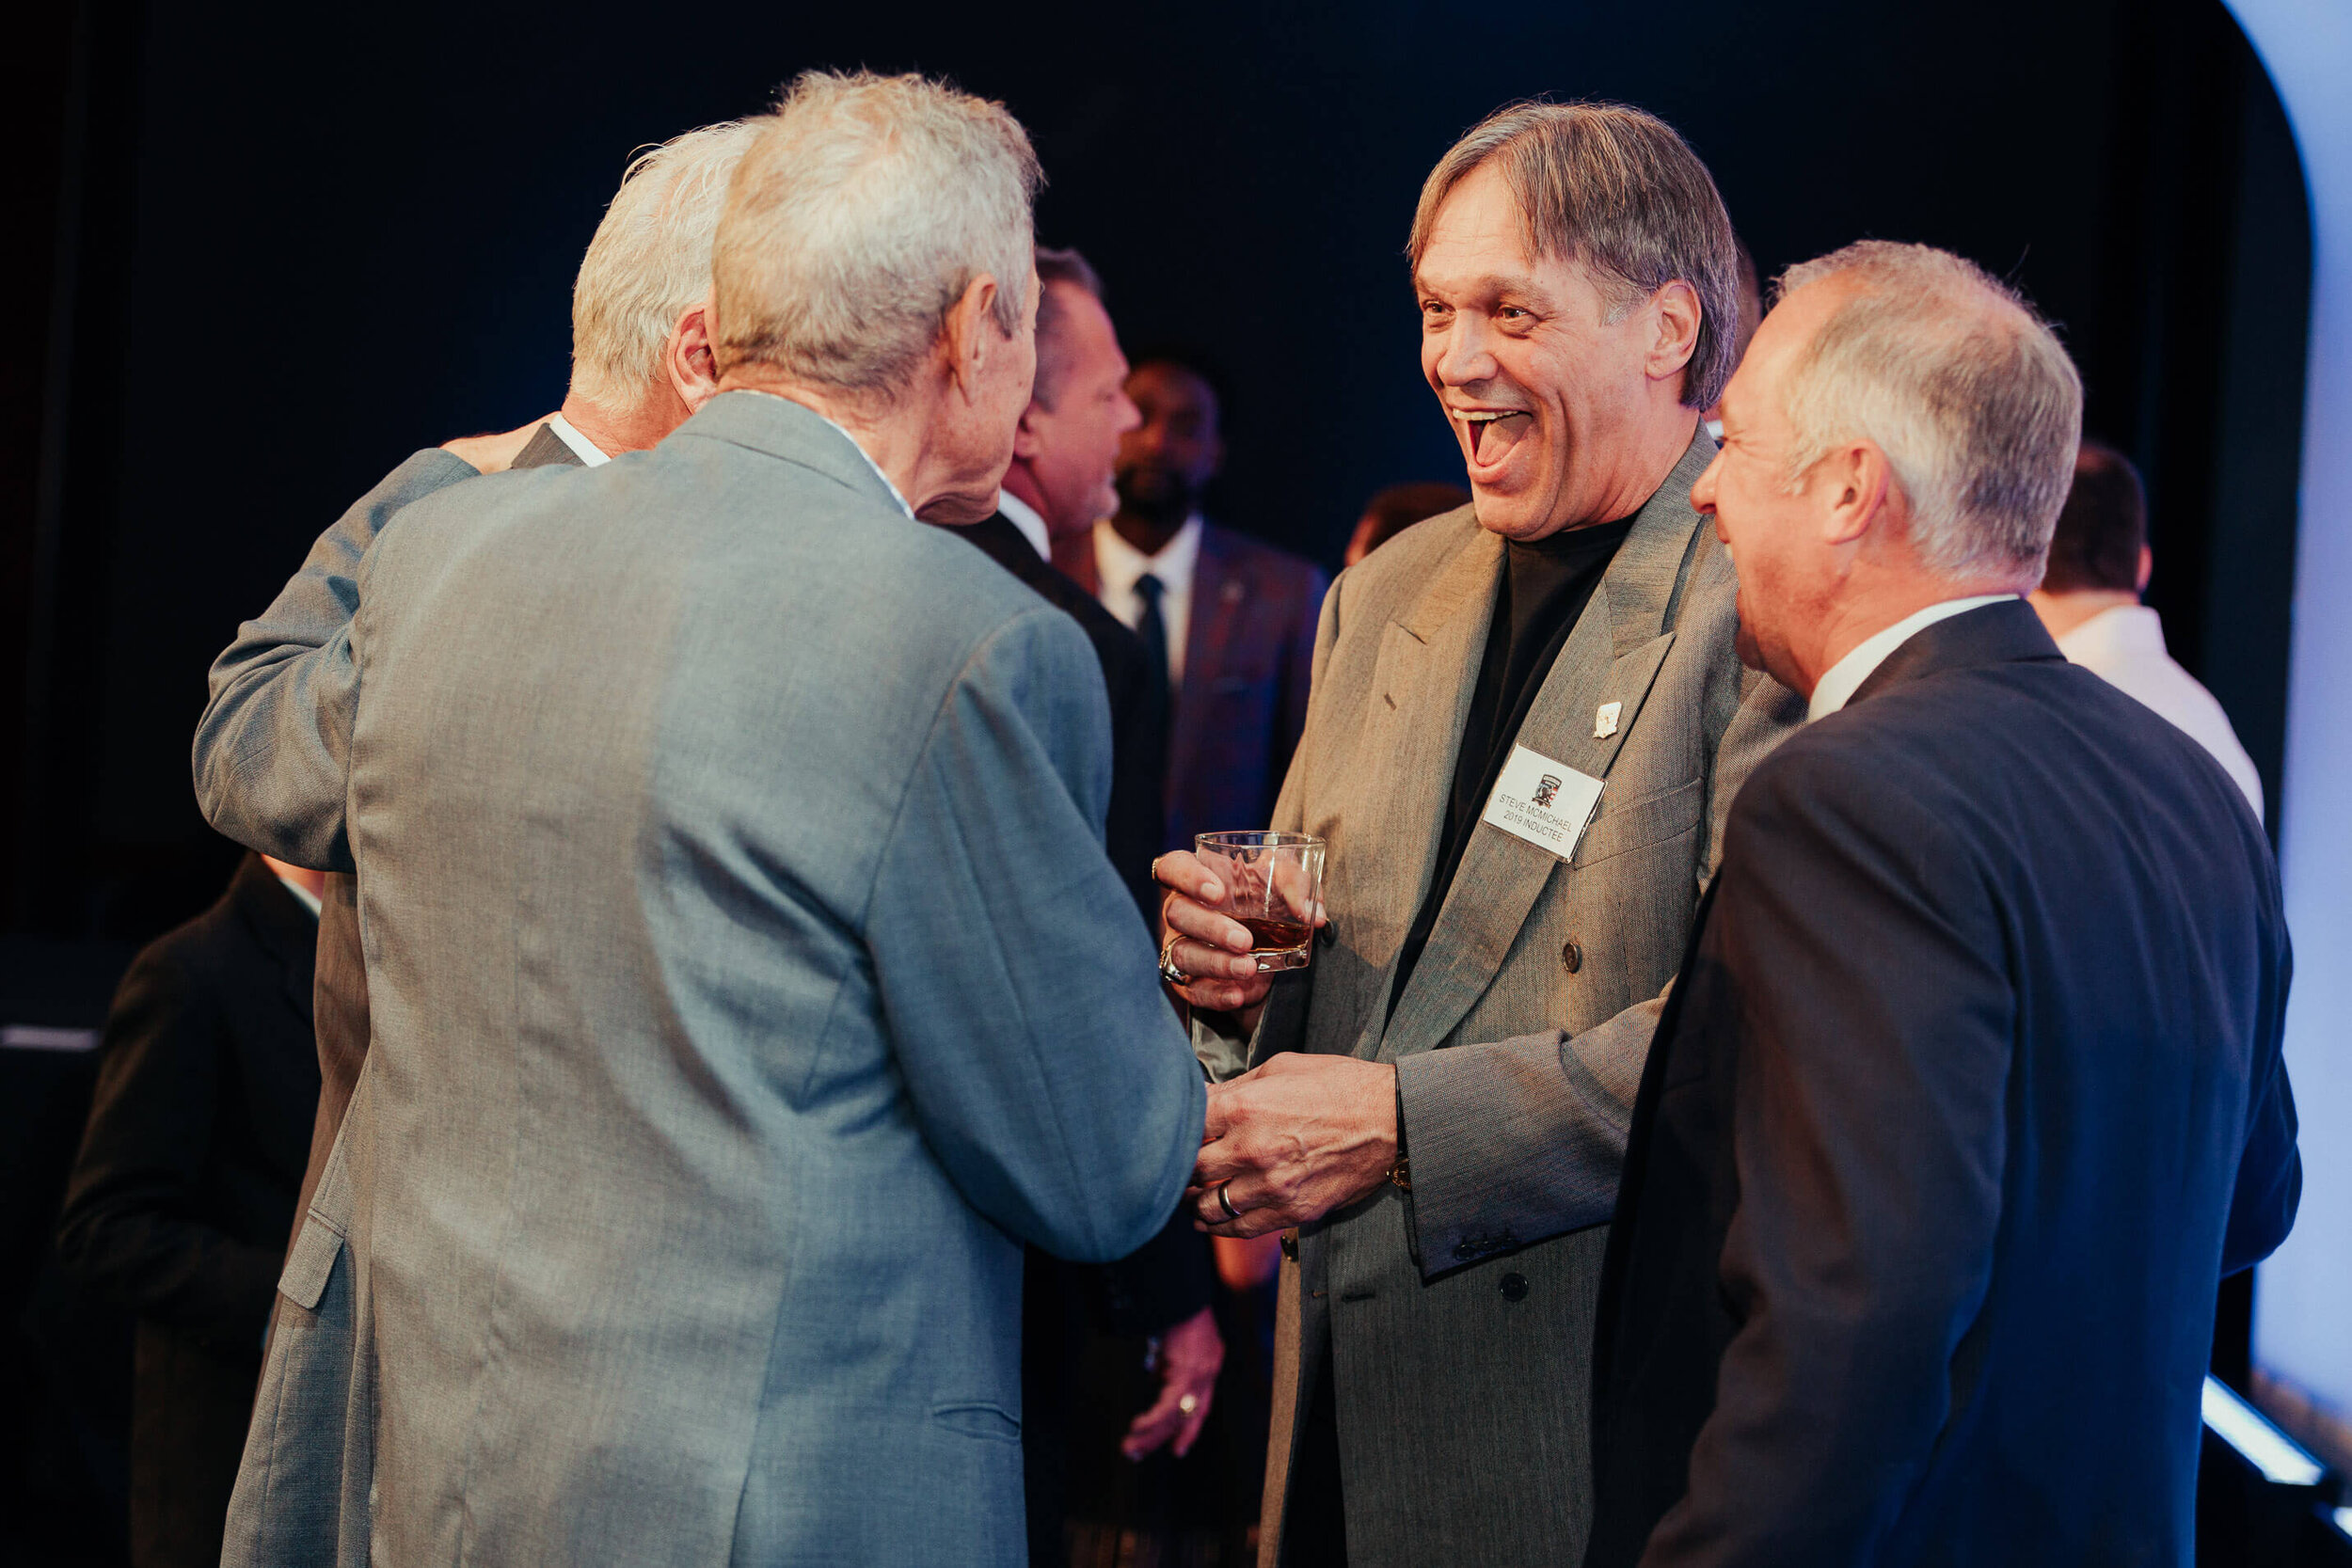 Chicago Event Photography_Gridiron Greats Assistance Fund Hall of Fame 2019_29.jpg